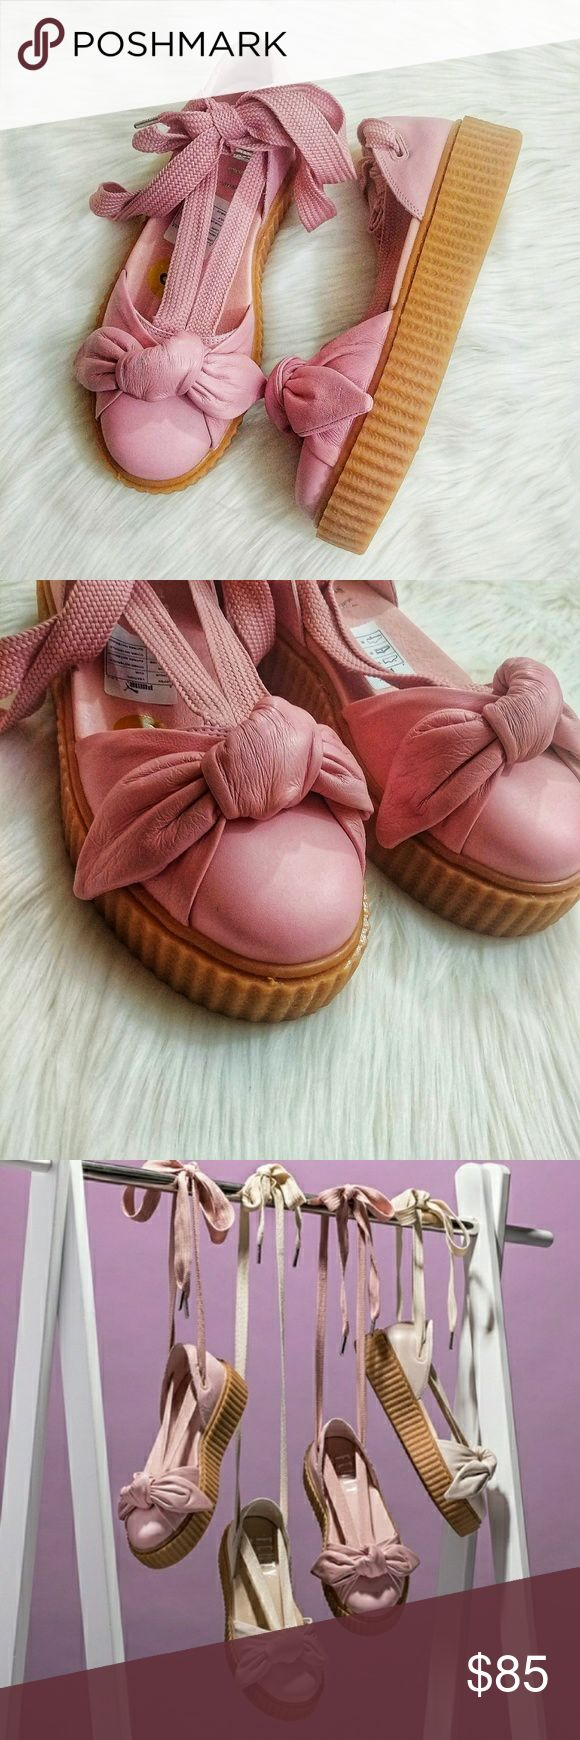 Puma Fenty Rihanna Bow Lace Up CreepersPuma Fenty New, No box. Fenty Puma by Rihanna Bow Lace Up Creeper Sandals. Size 7M.   Light Brown leather upper. Lace up straps. No dust bag or box. No Trades. Super comfy and true to size   021418/70 Puma Shoes